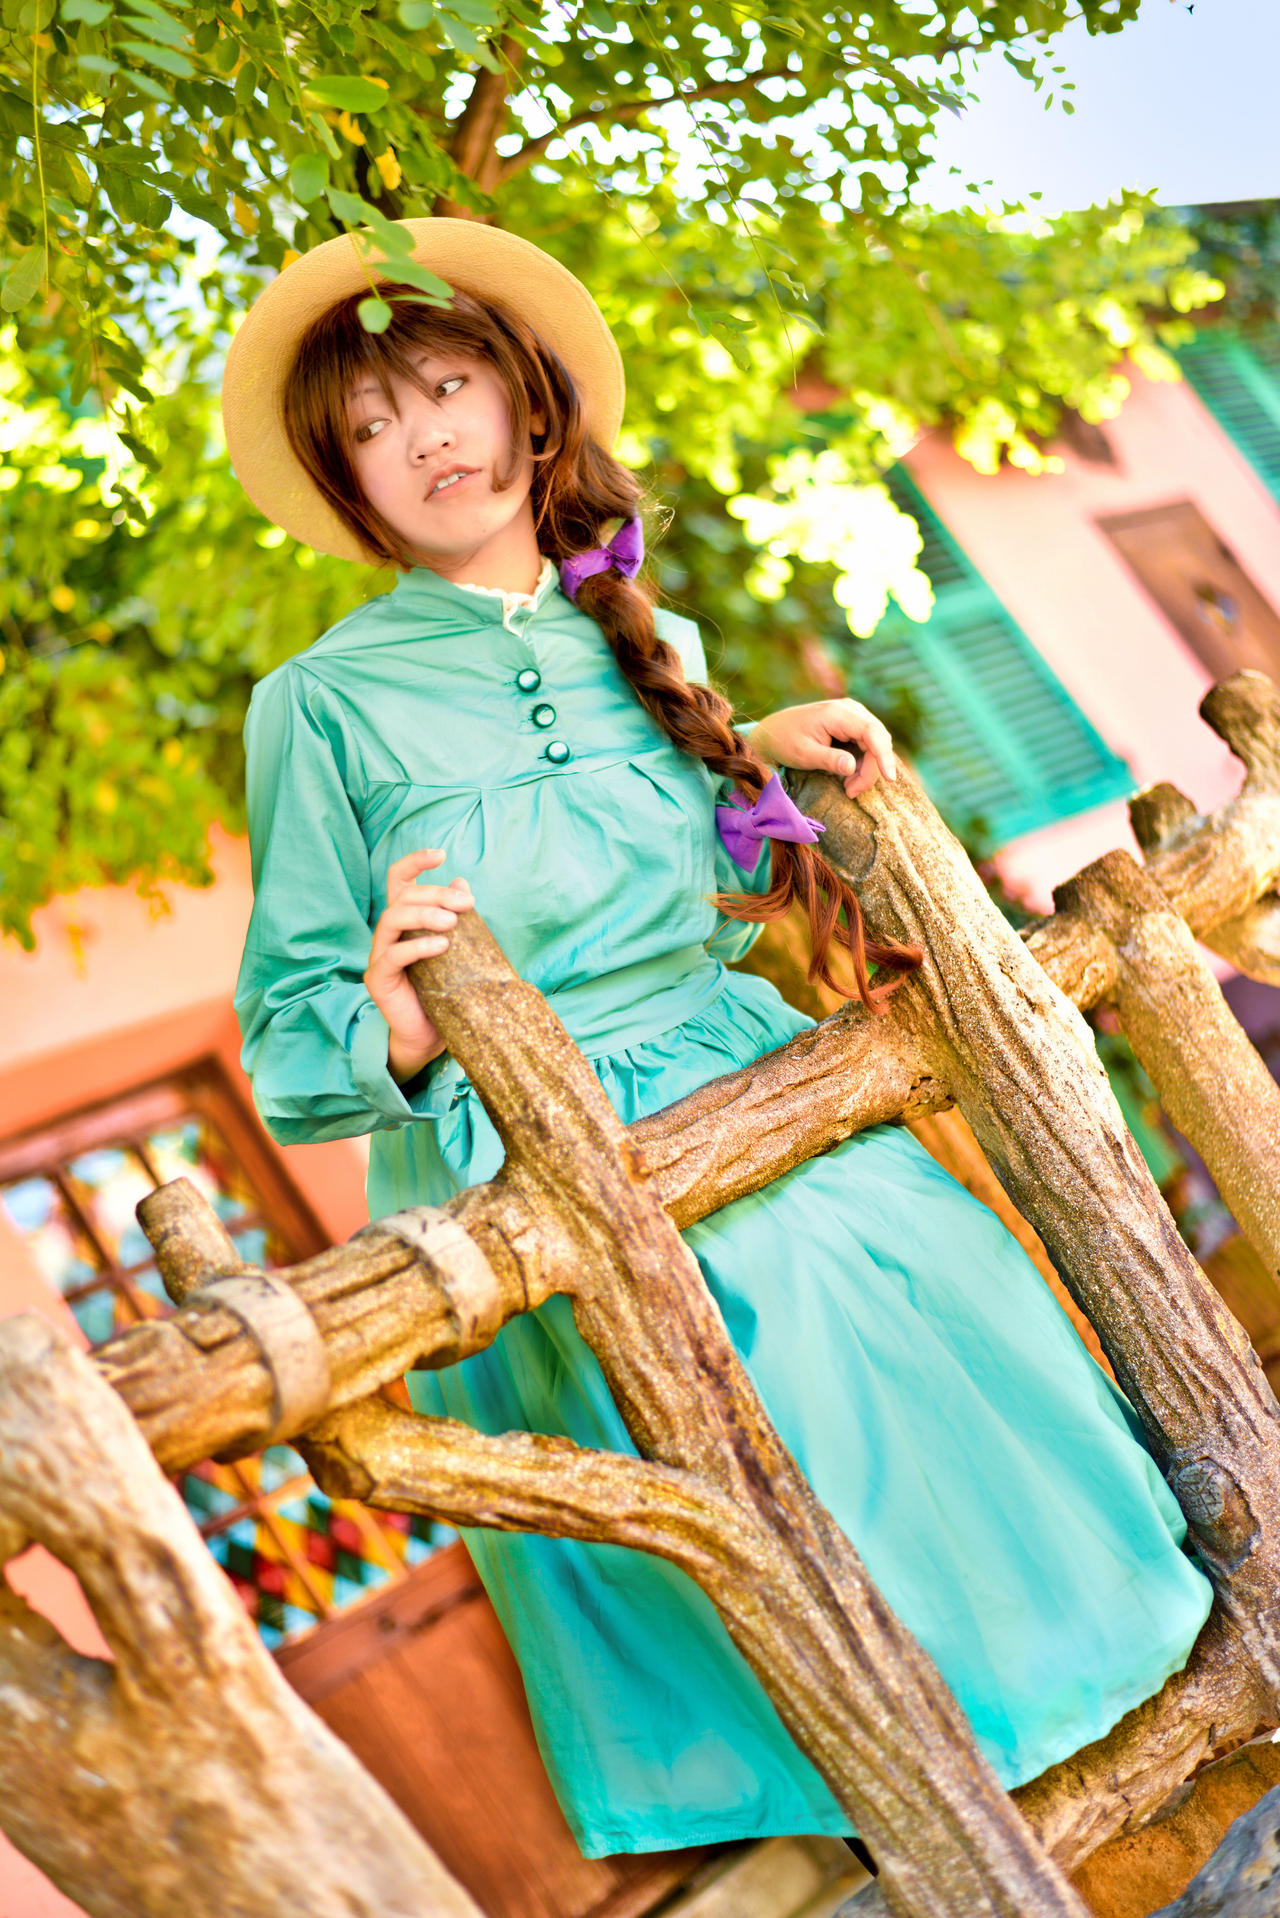 Howl's Moving Castle - A Wandering Sophie by TrustOurWorldNow